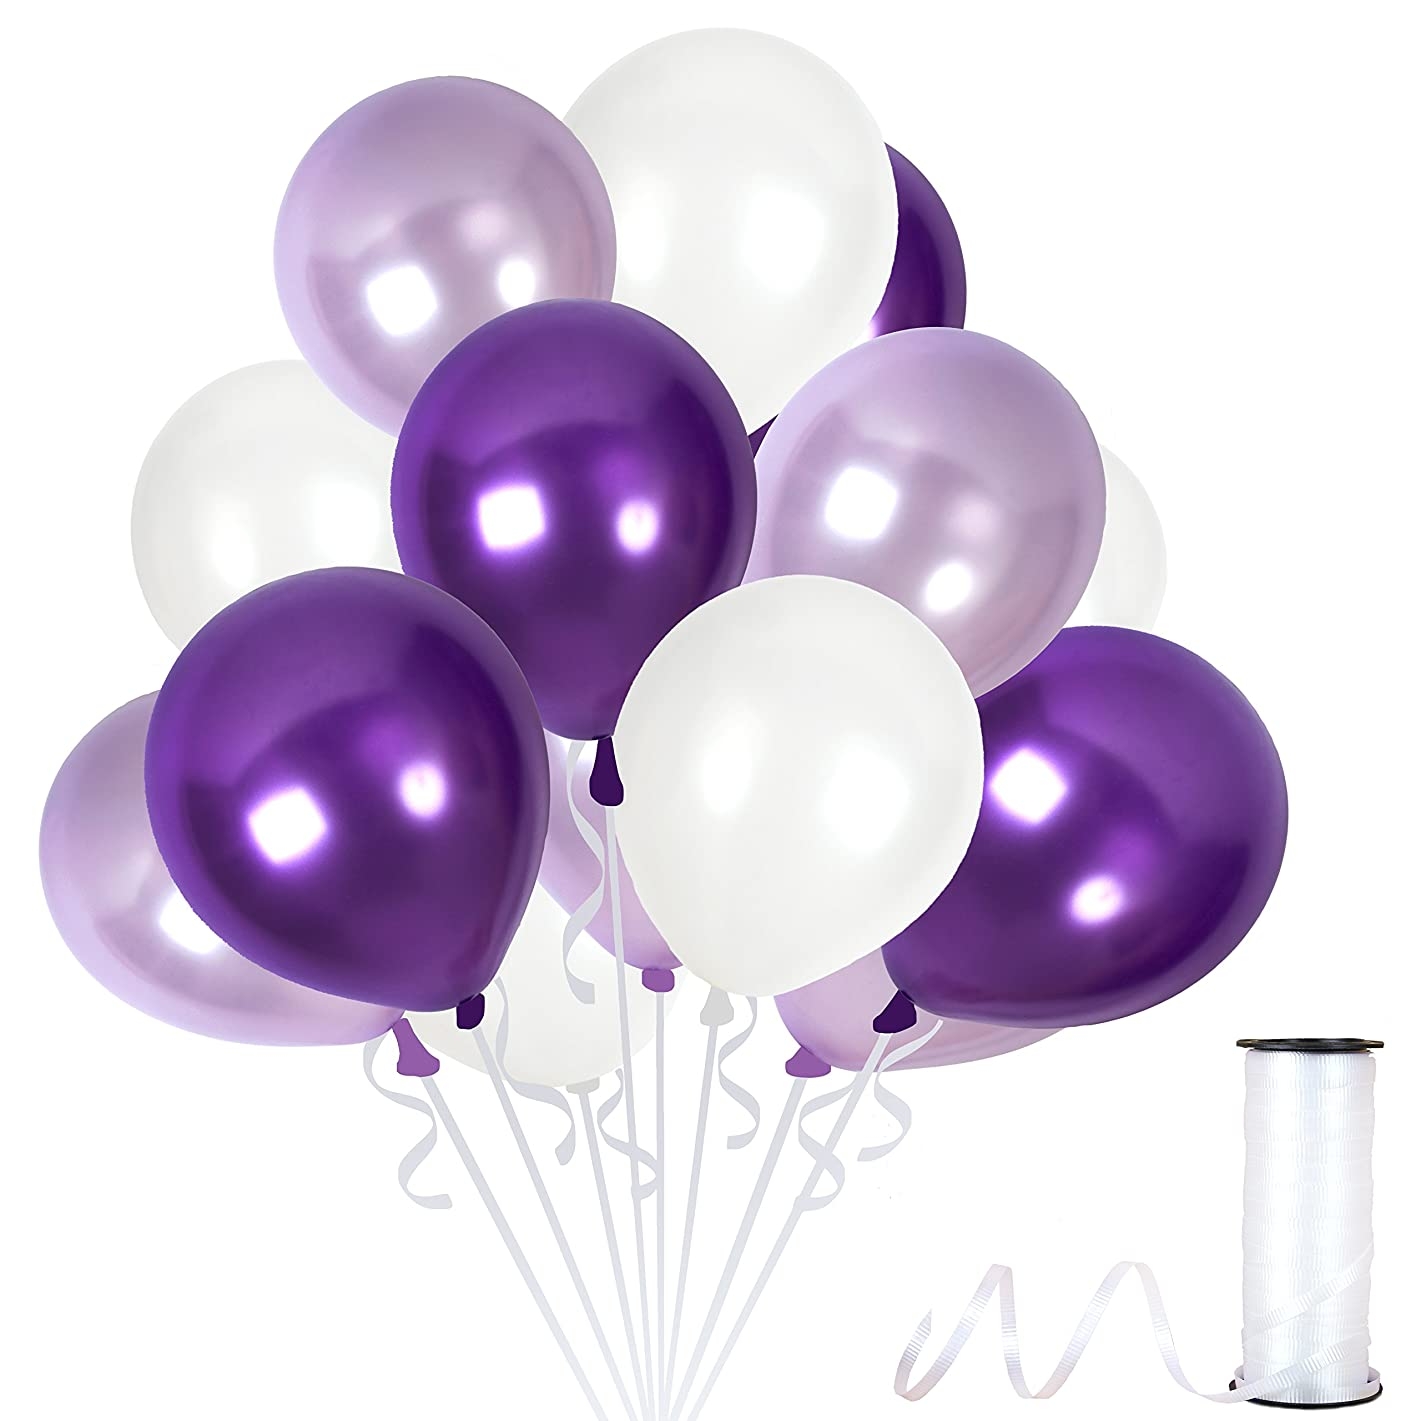 Assorted Metallic Pearl White Purple Balloons 12 Inch Lilac Lavender Violet Thick Latex Balloon Bulk Pack of 100 and Ribbons Party Supplies for Wedding Bridal Baby Shower Birthday Decorations